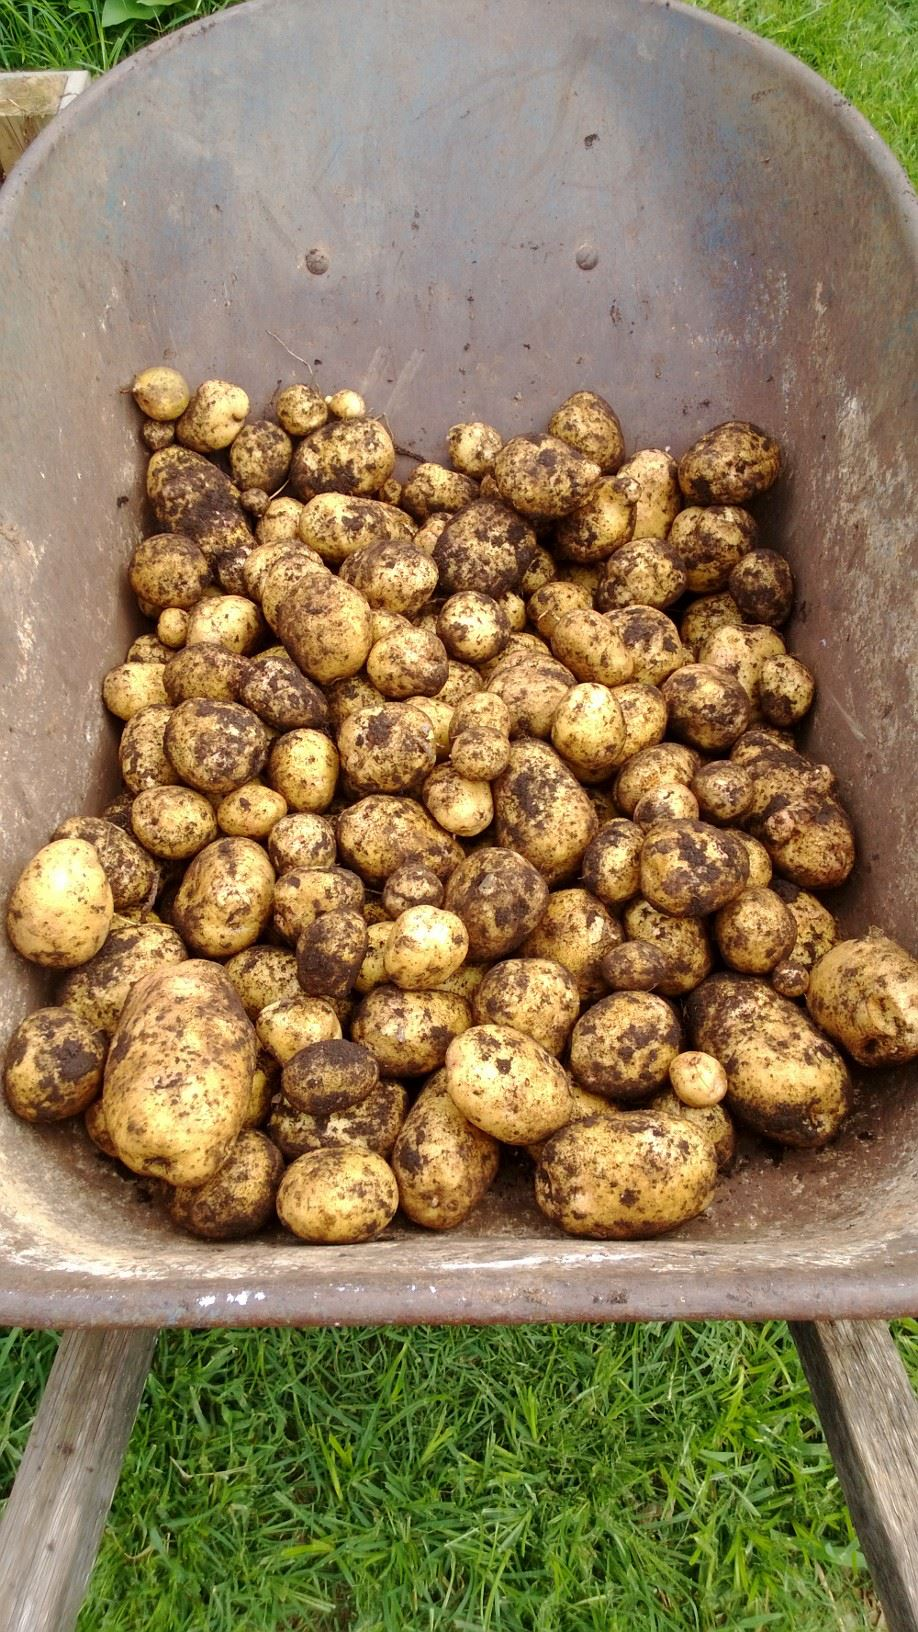 IMAGE DESCRIPTION:  A wheelbarrow full of freshly-picked, dirt-covered golden potatoes!